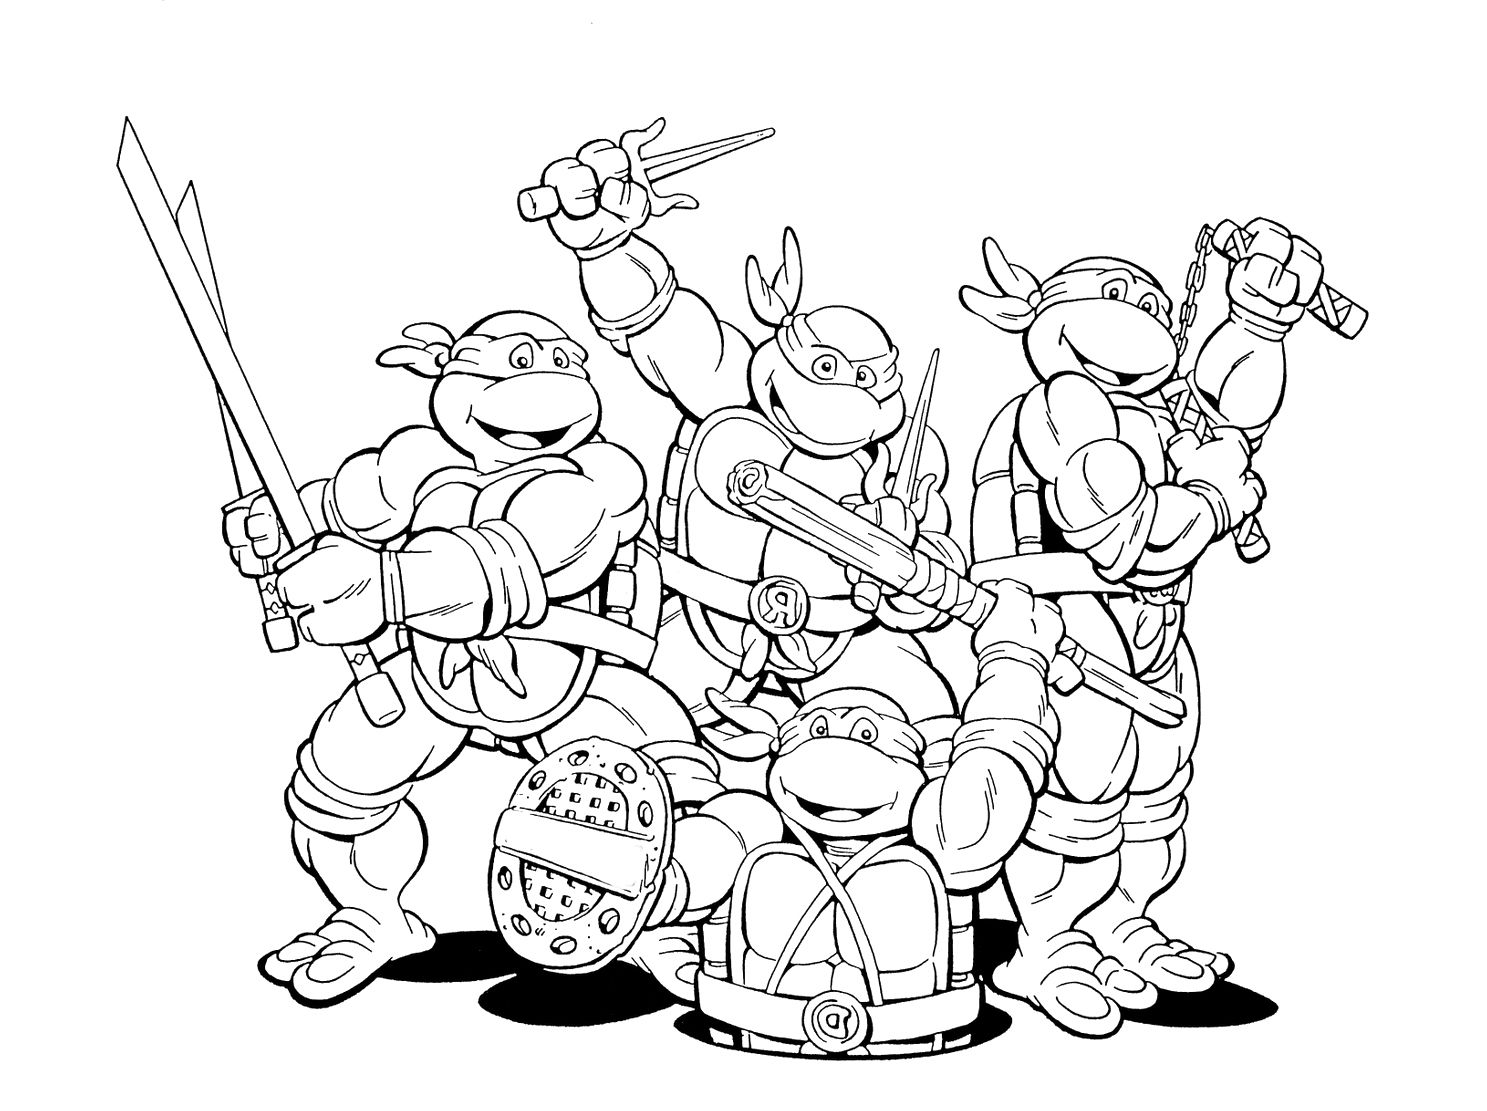 Coloring online ninja - Teenage Mutant Ninja Turtles Coloring Pages